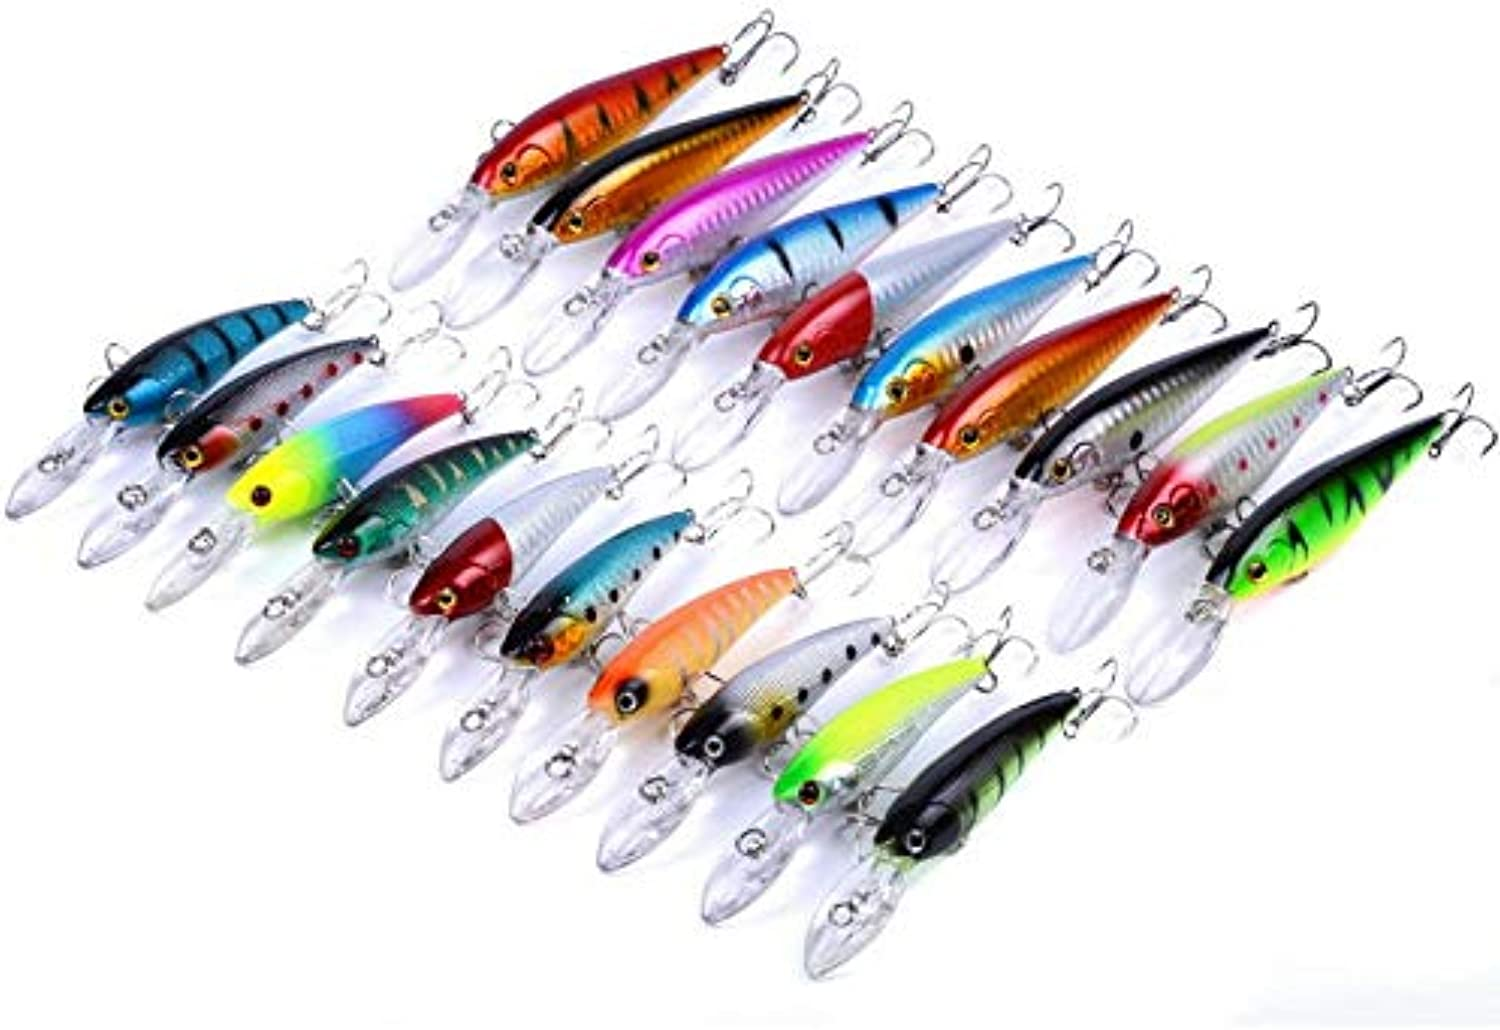 Generic 20pcs Set 8.3g 10.5g Fishing Lures Minnow Crankbait Popper Hardbait Minnow Leurre Dur Fishing Lure Set Leurre Isca Crankbait